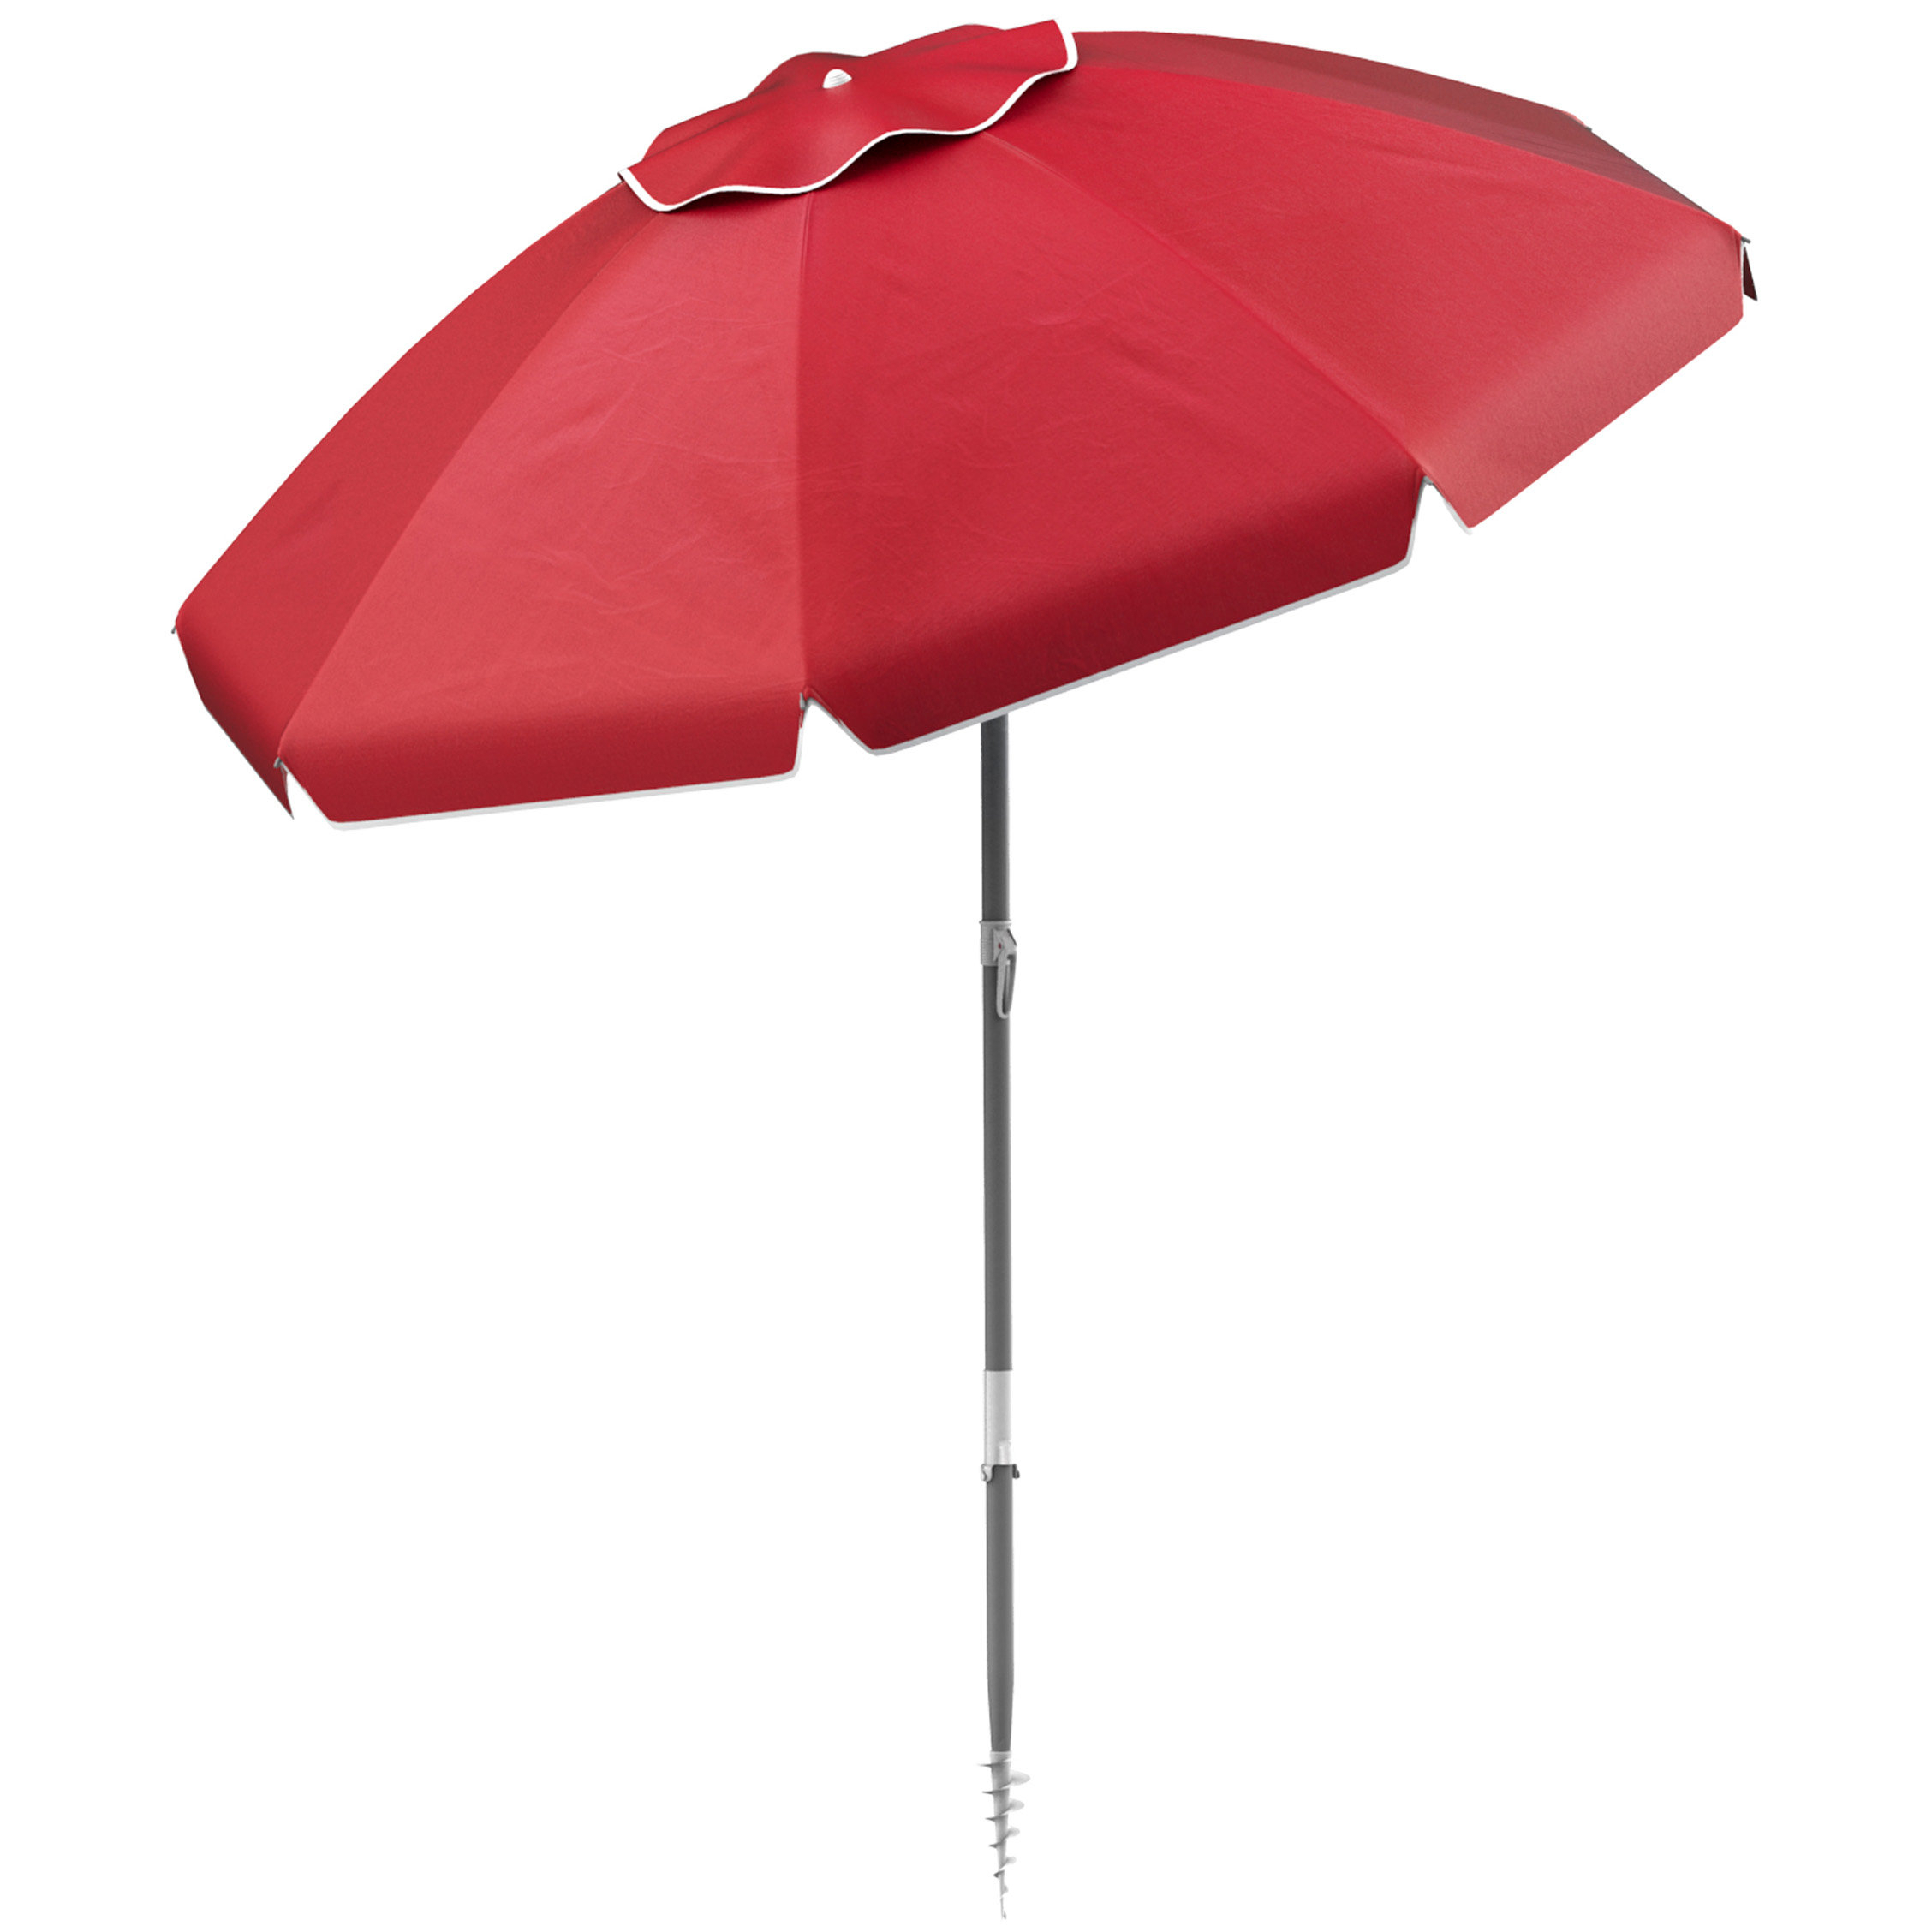 2019 Stanhope Tilting Beach Umbrella Intended For Hyperion Beach Umbrellas (View 15 of 20)